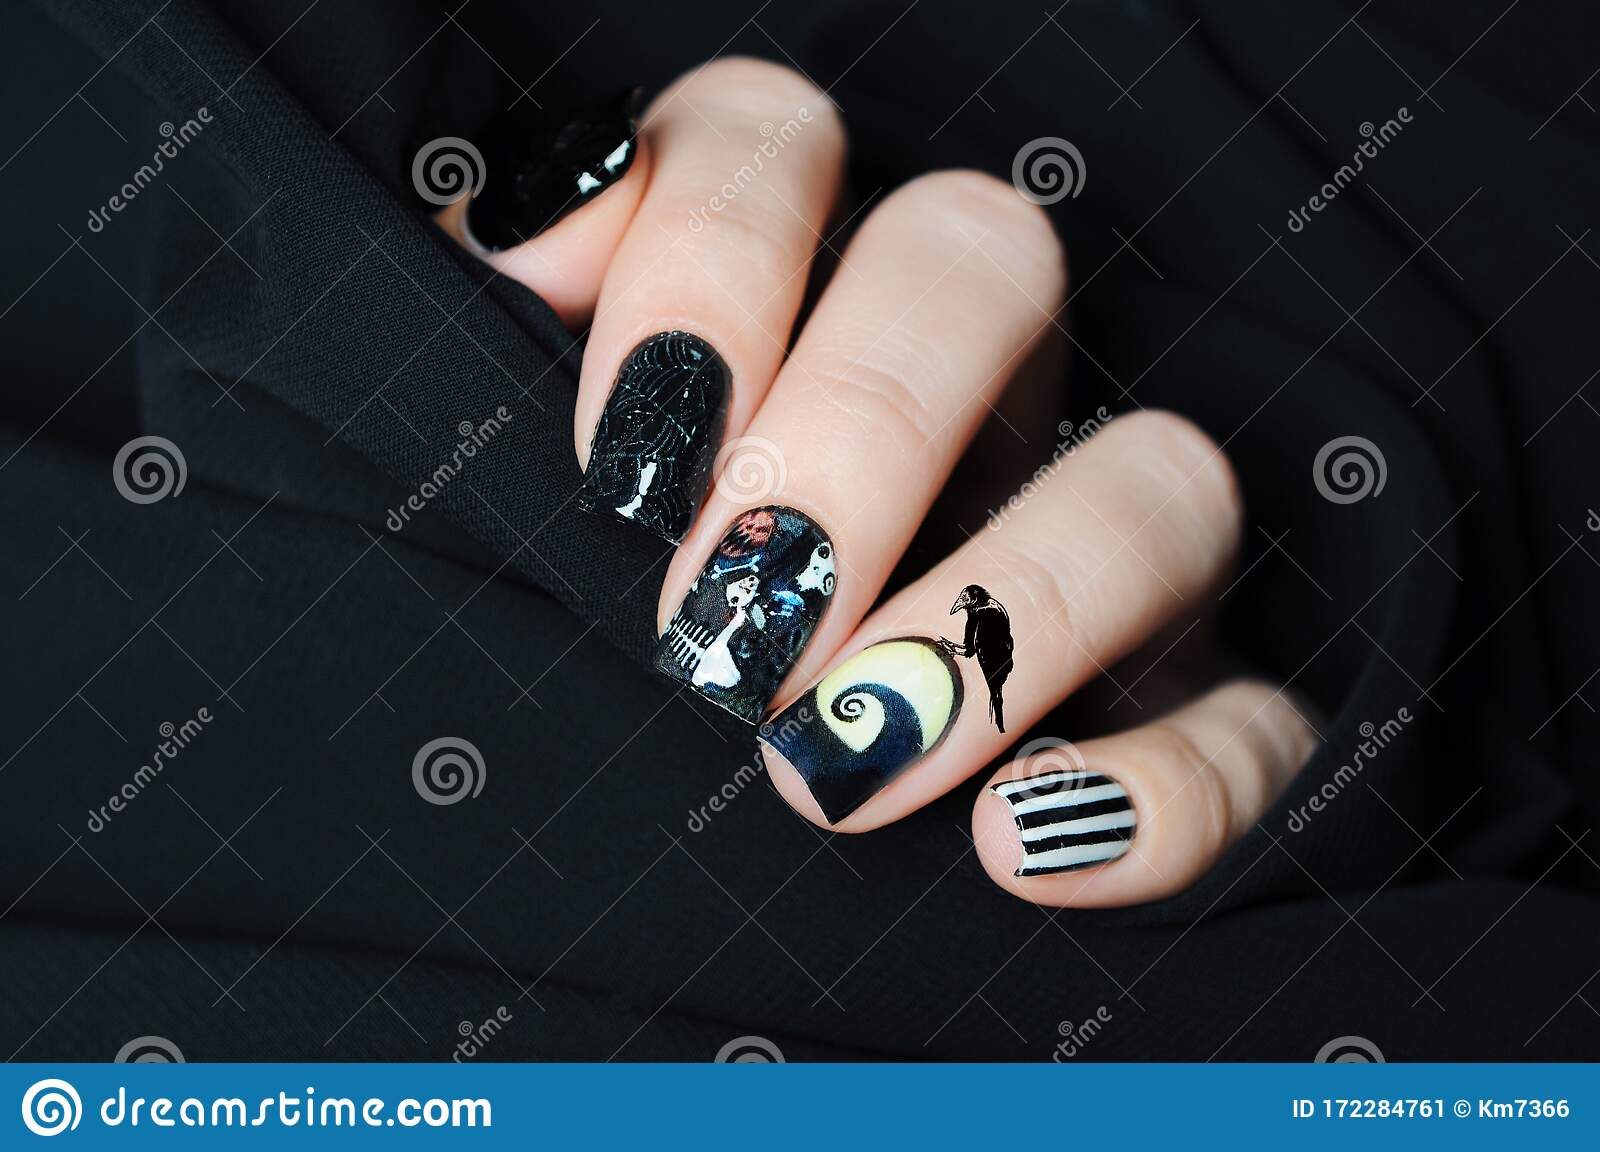 Black Nail Art Halloween Manicure In The Style Of ...